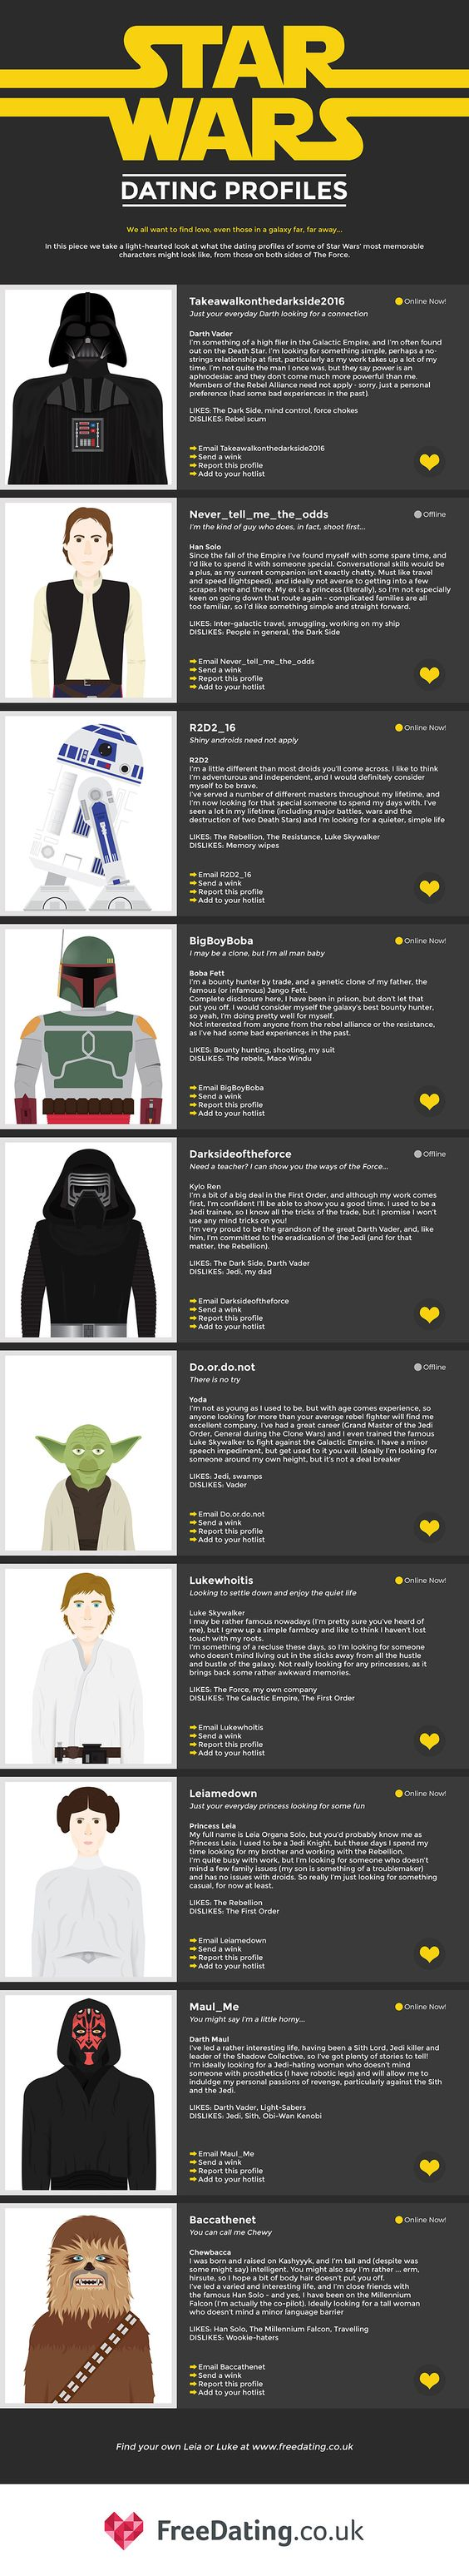 Star Wars Dating Profiles | By: Freedating.co.uk (via MakeUseOf) | #starwars #starwarshumor #infographic